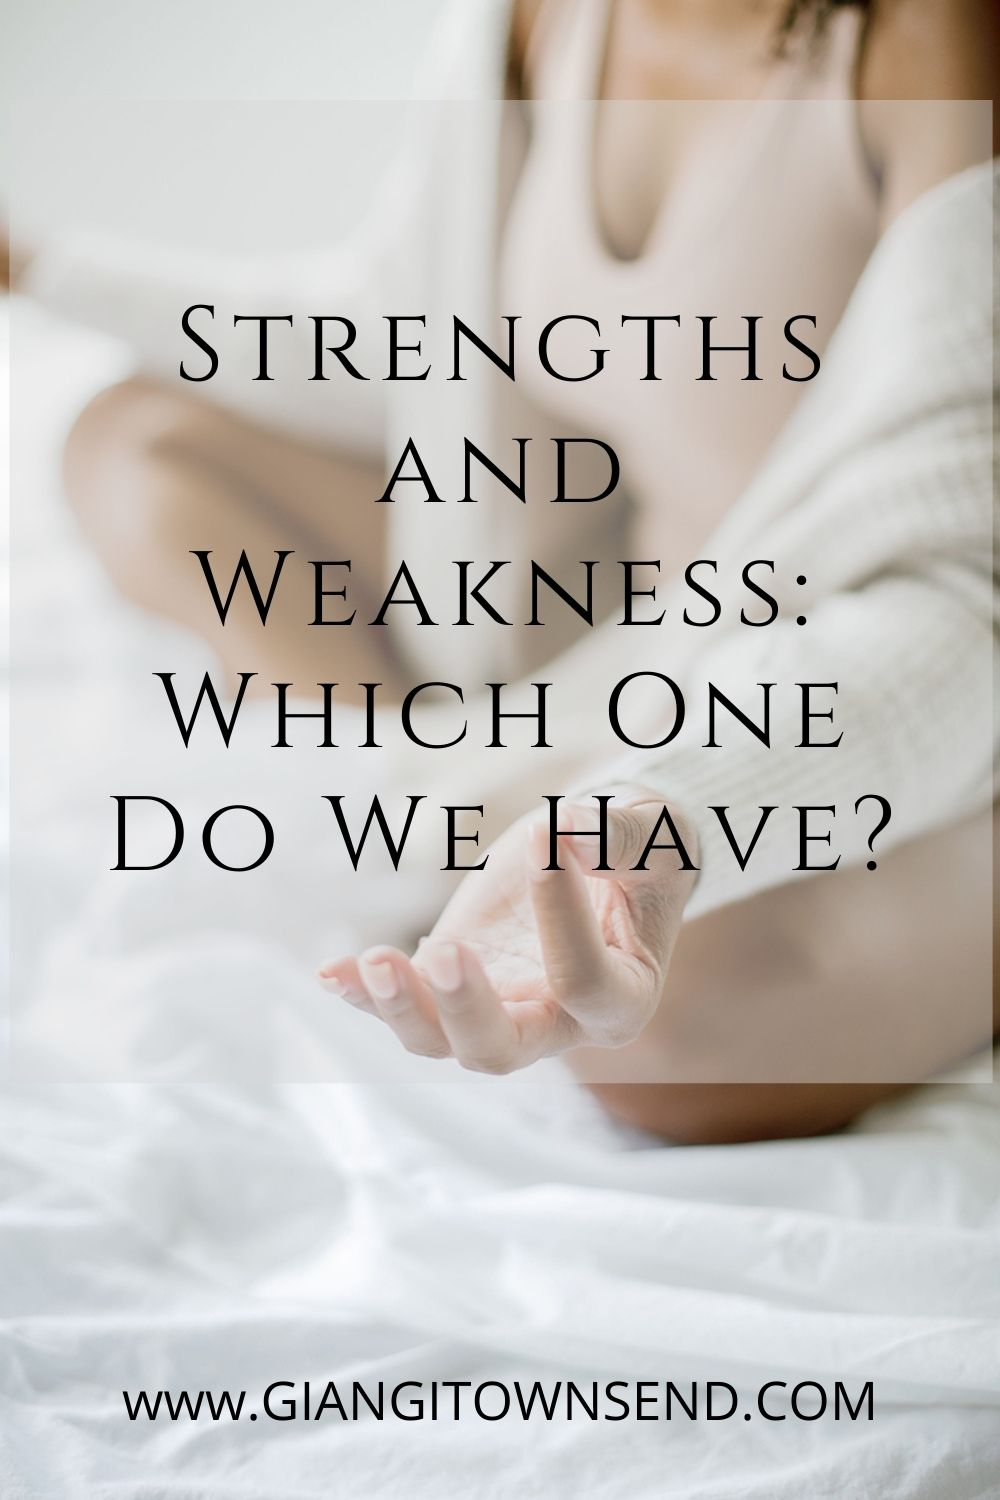 Strengths and weaknesS: which one do we have?